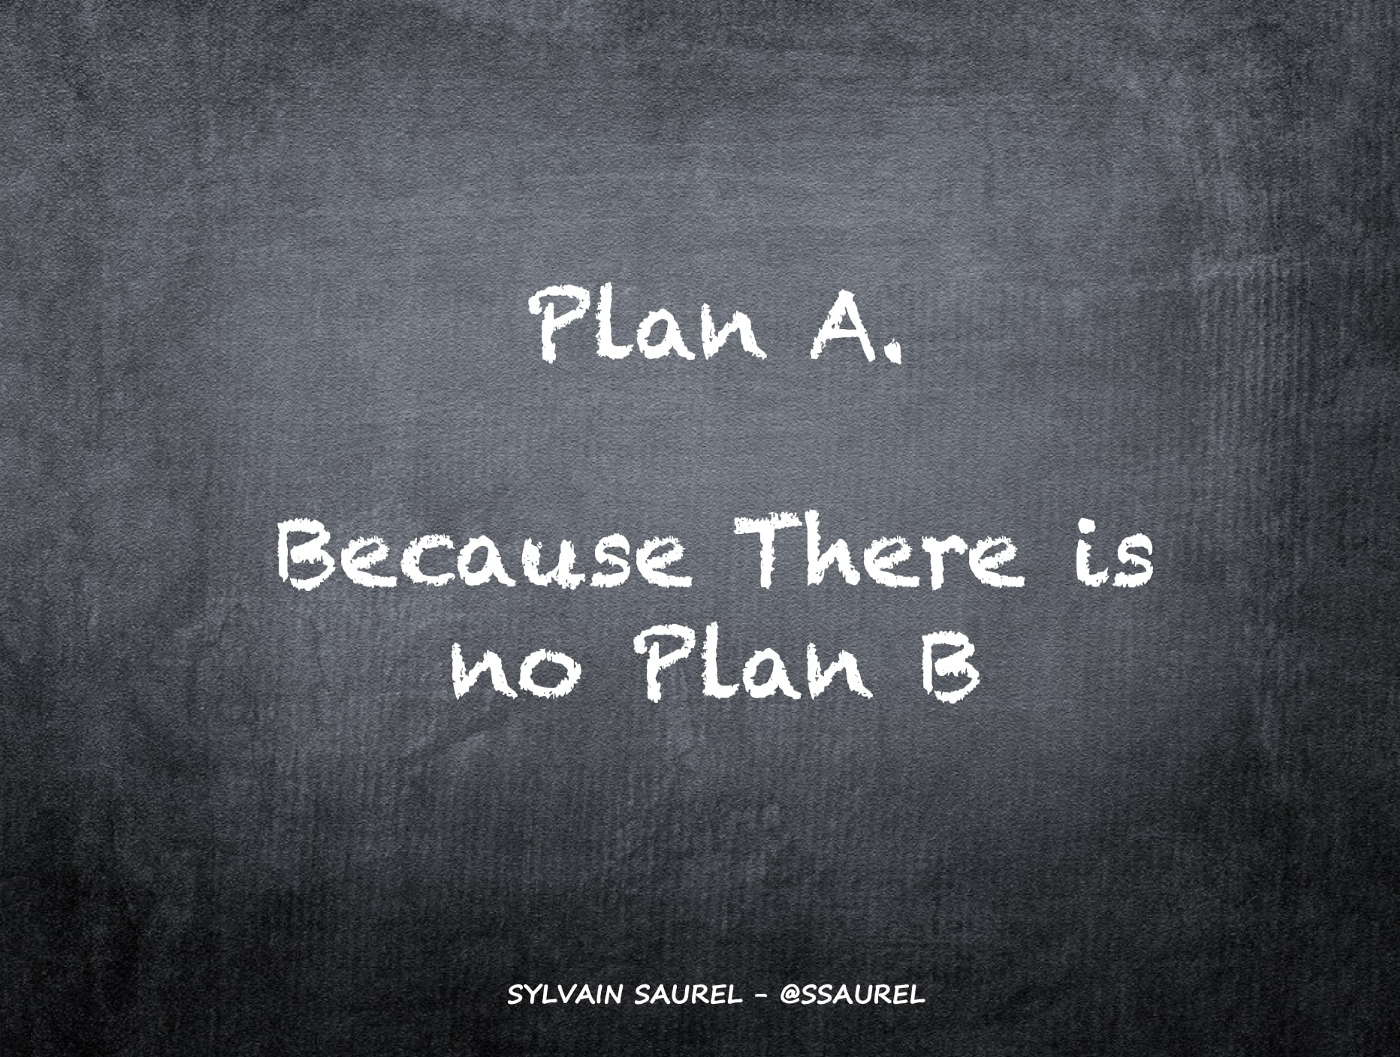 [Image] Plan A. Because There is no Plan B.